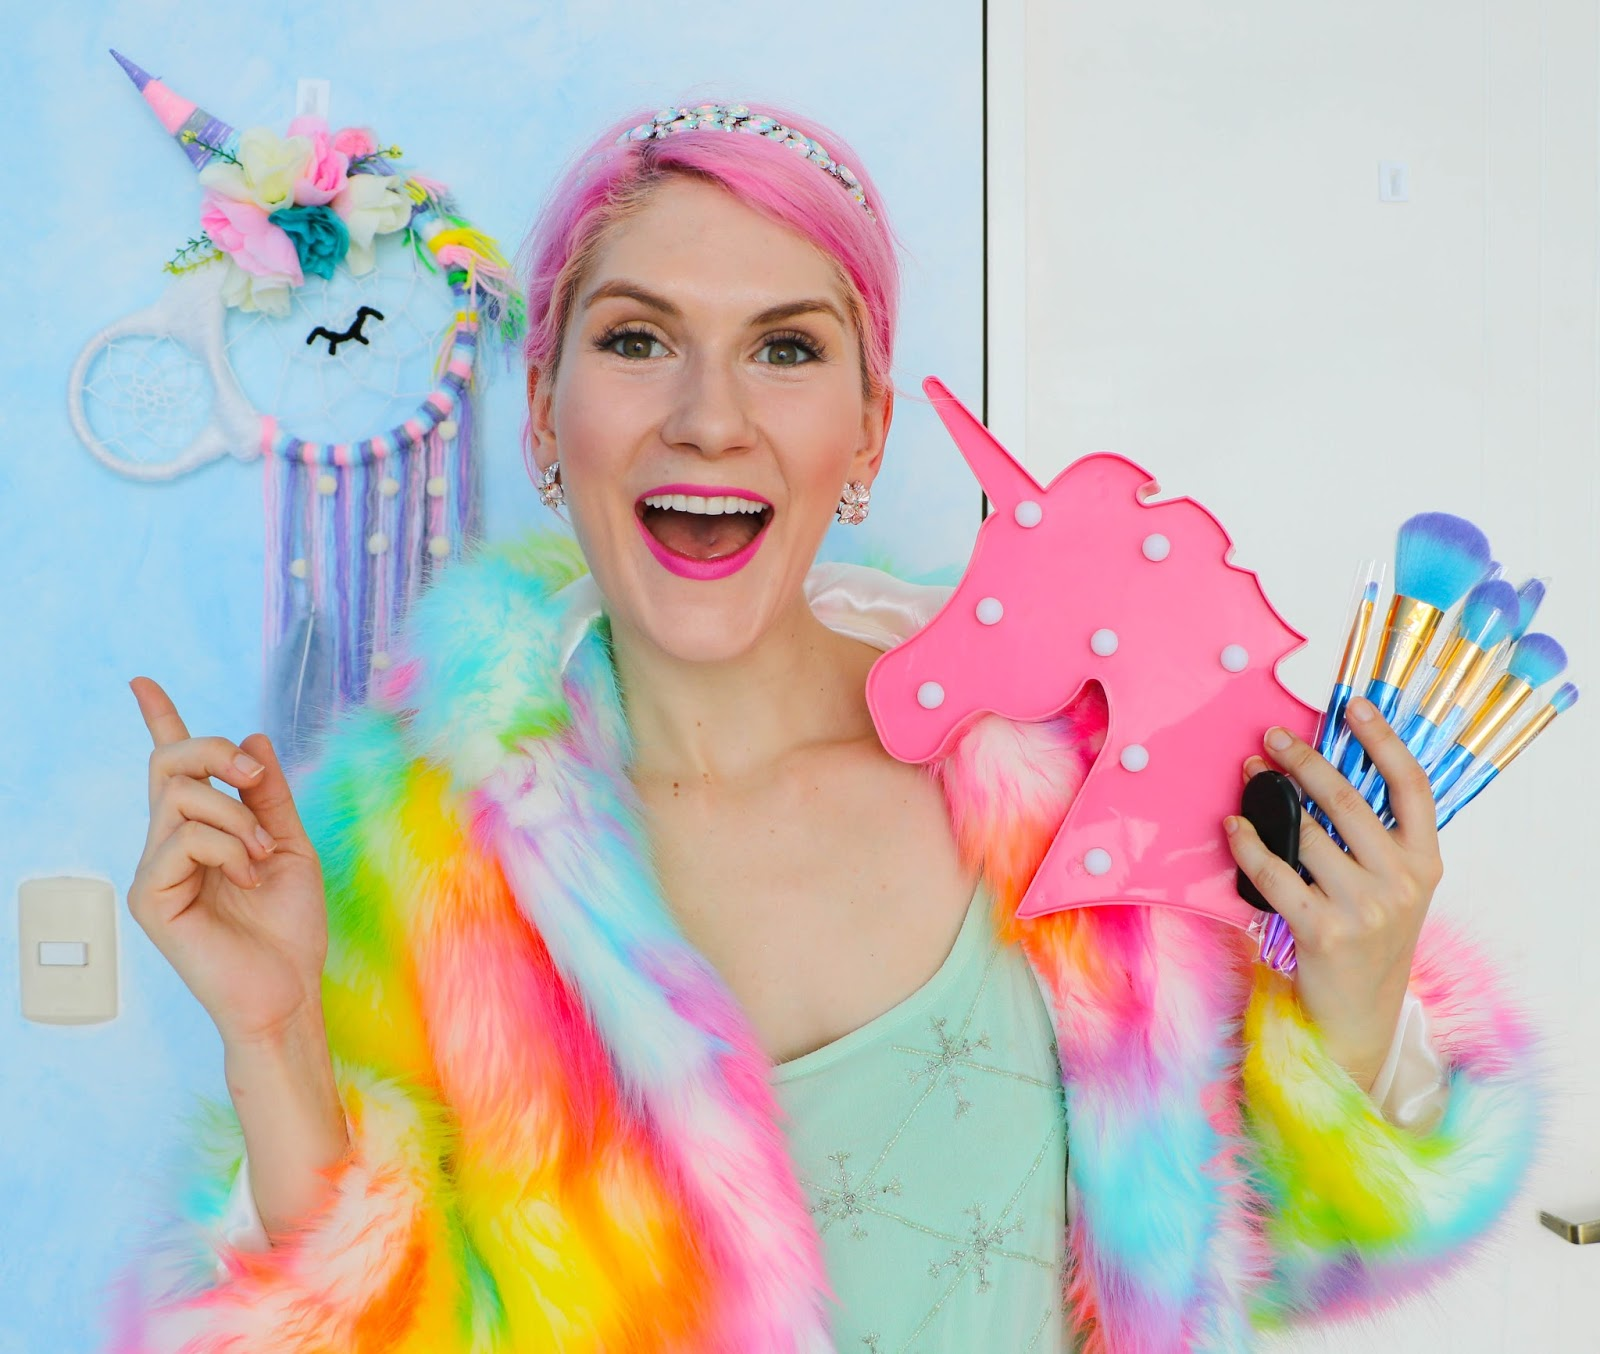 Click through to see the unboxing of the super cute Unicorn Dream Box